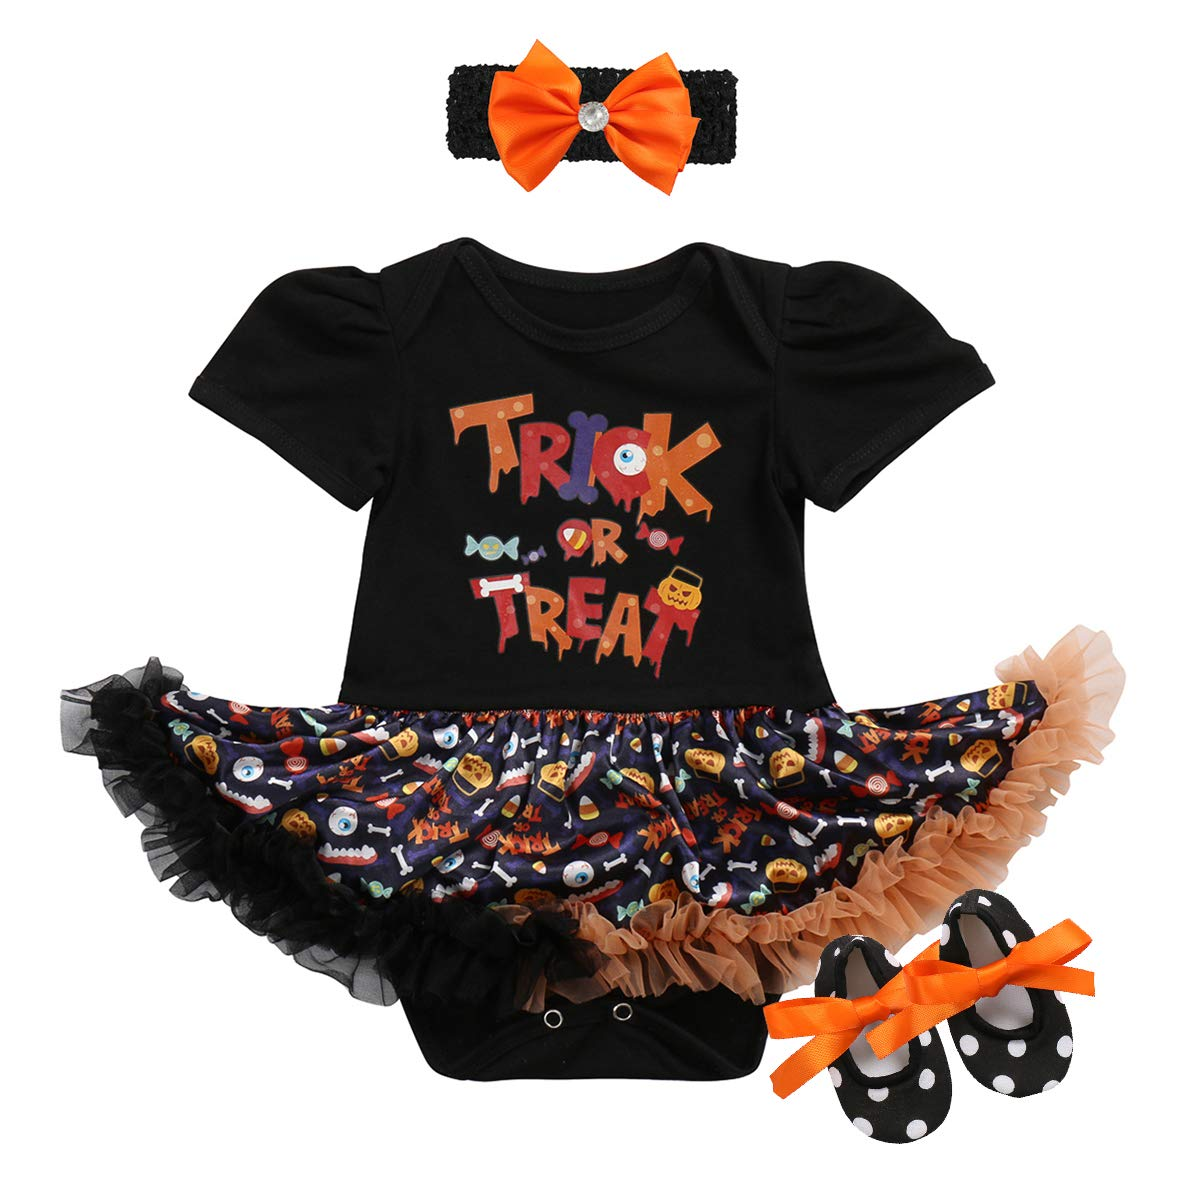 FYMNSI Newborn Infant Baby Girls My 1st Halloween Pumpkin Outfits Tutu Romper Dress with Bowknot Headband Shoes 3PCS Set Toddlers Photo Shoot Costume Cosplay Party Fancy Dress Up Clothes 0-18 Months